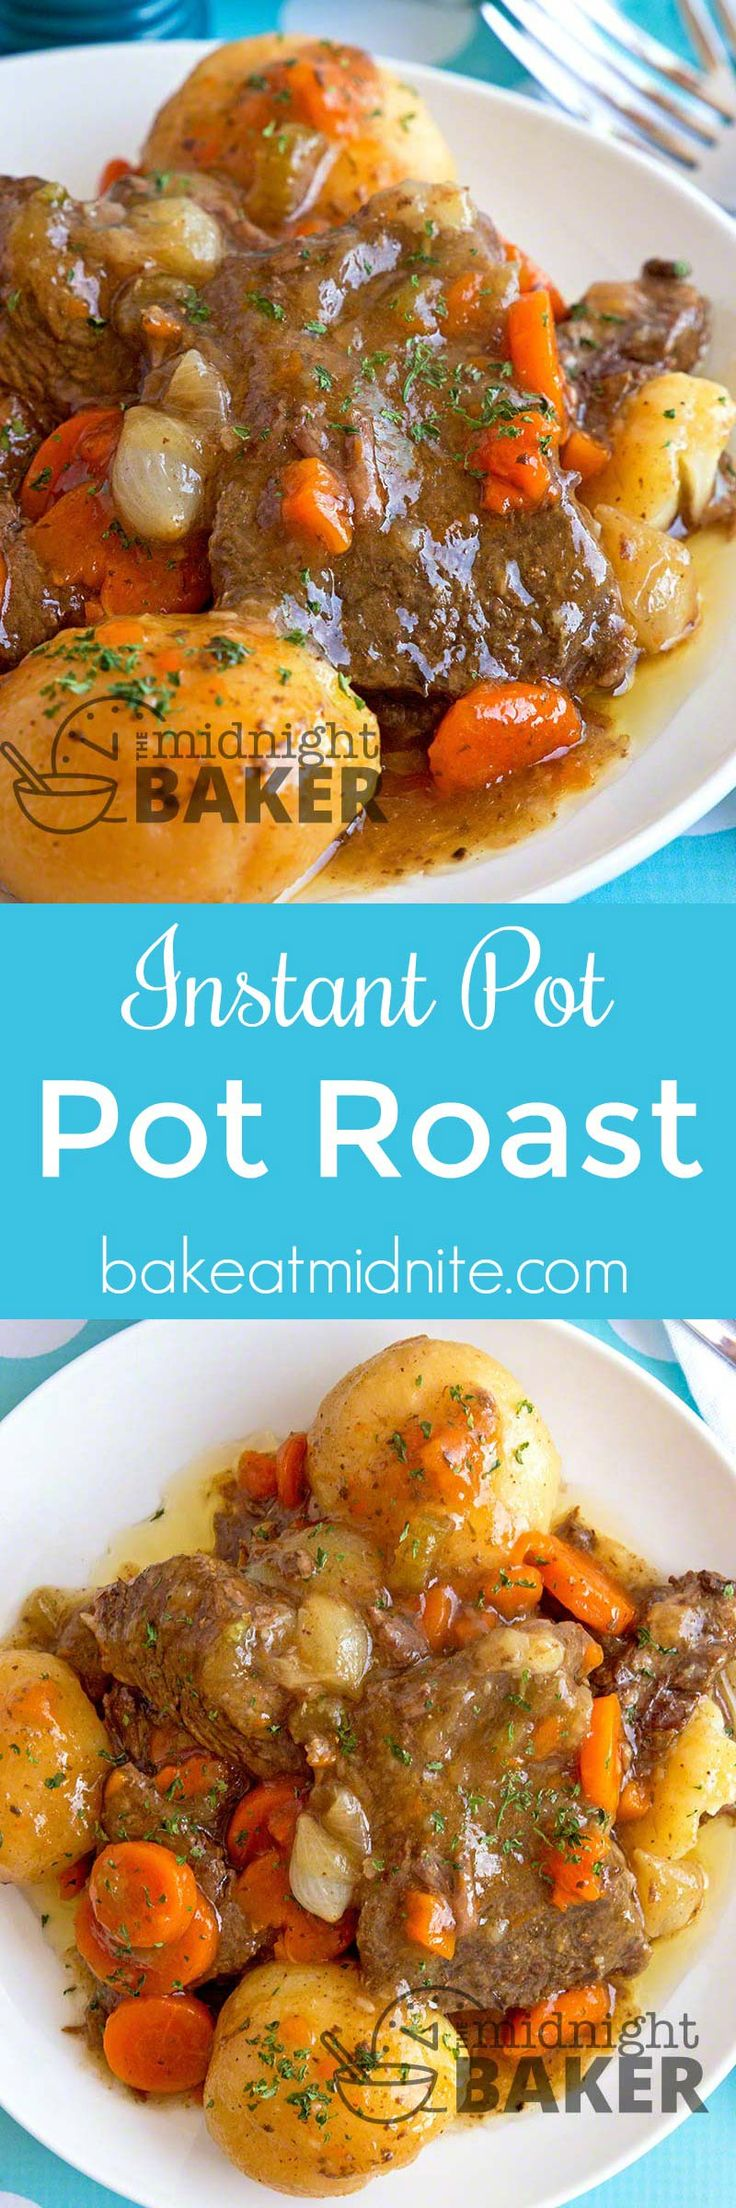 Not only is this pot roast quick and easy, thanks to your Instant Pot, but it's tasty and easy on the budget as well.